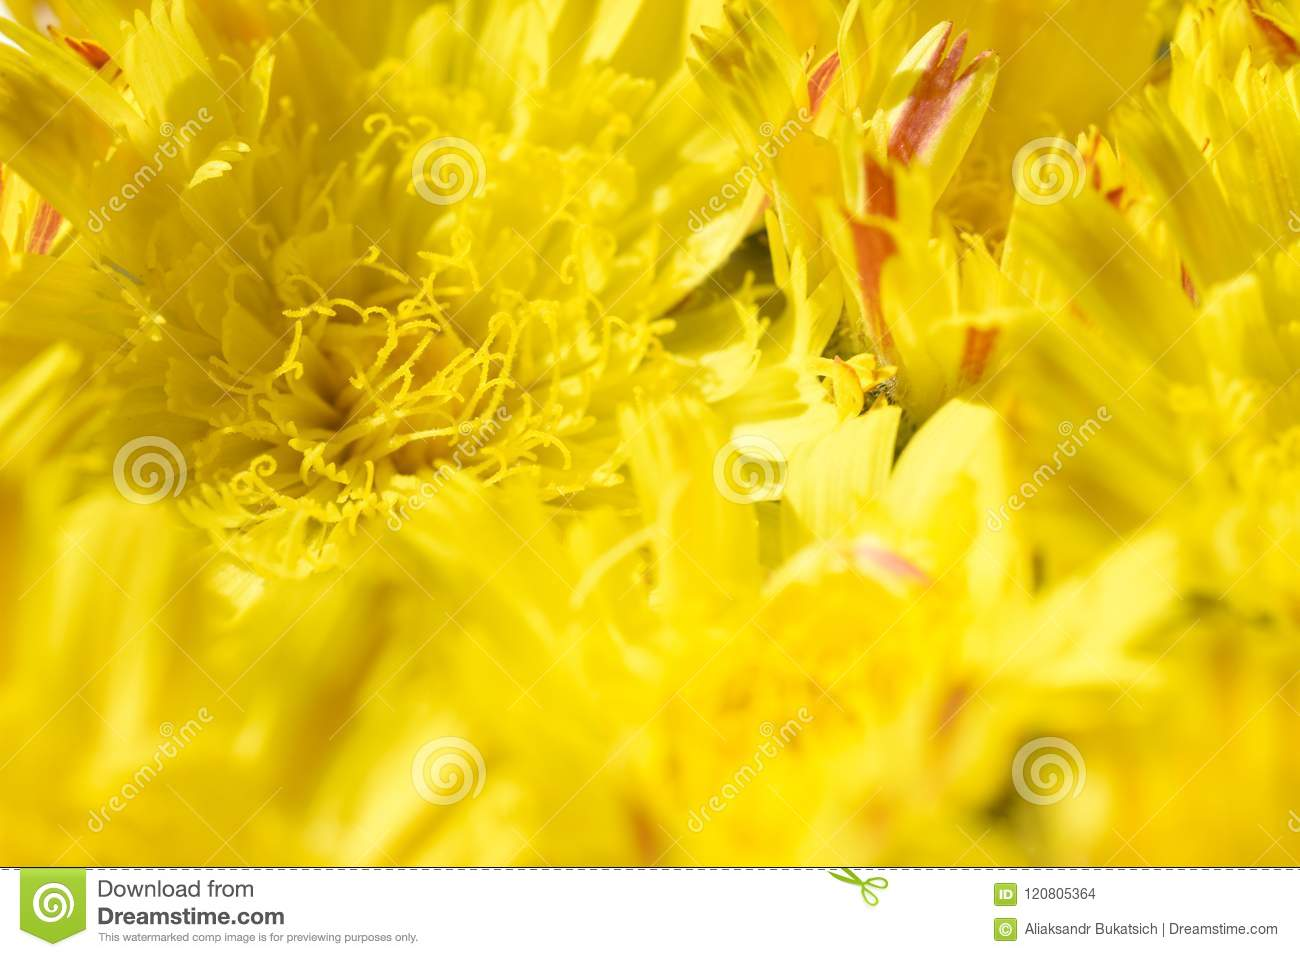 Isolated background of flowers yellow daisy with a yellow core and orange petals